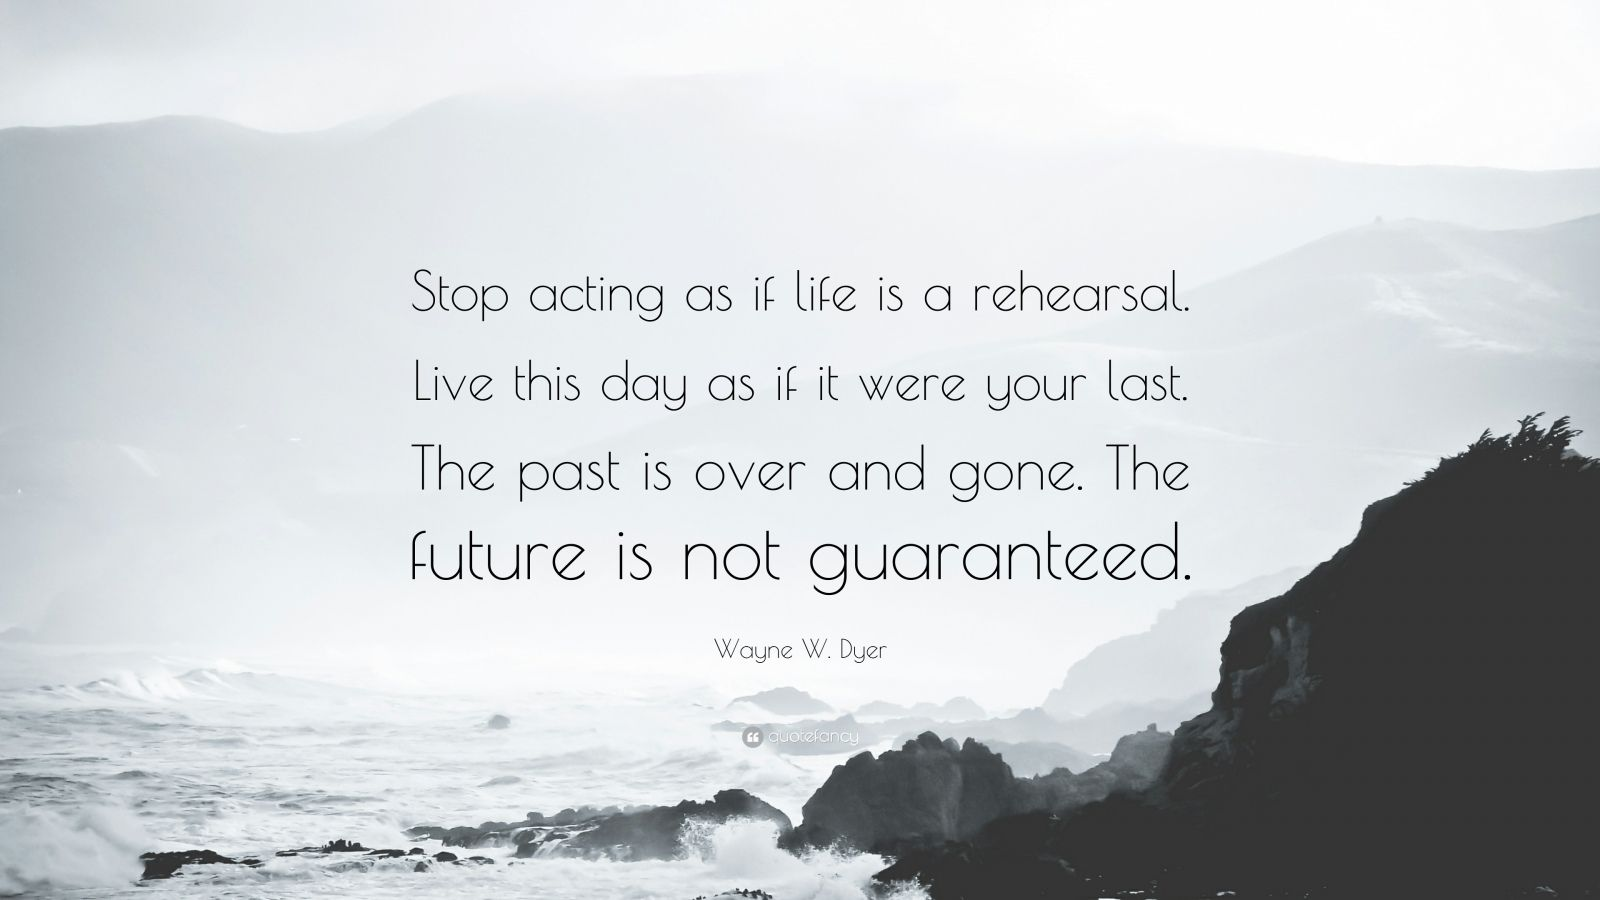 """Wayne W. Dyer Quote: """"Stop acting as if life is a rehearsal. Live this day as if it were your last. The past is over and gone. The future is not guaranteed."""""""